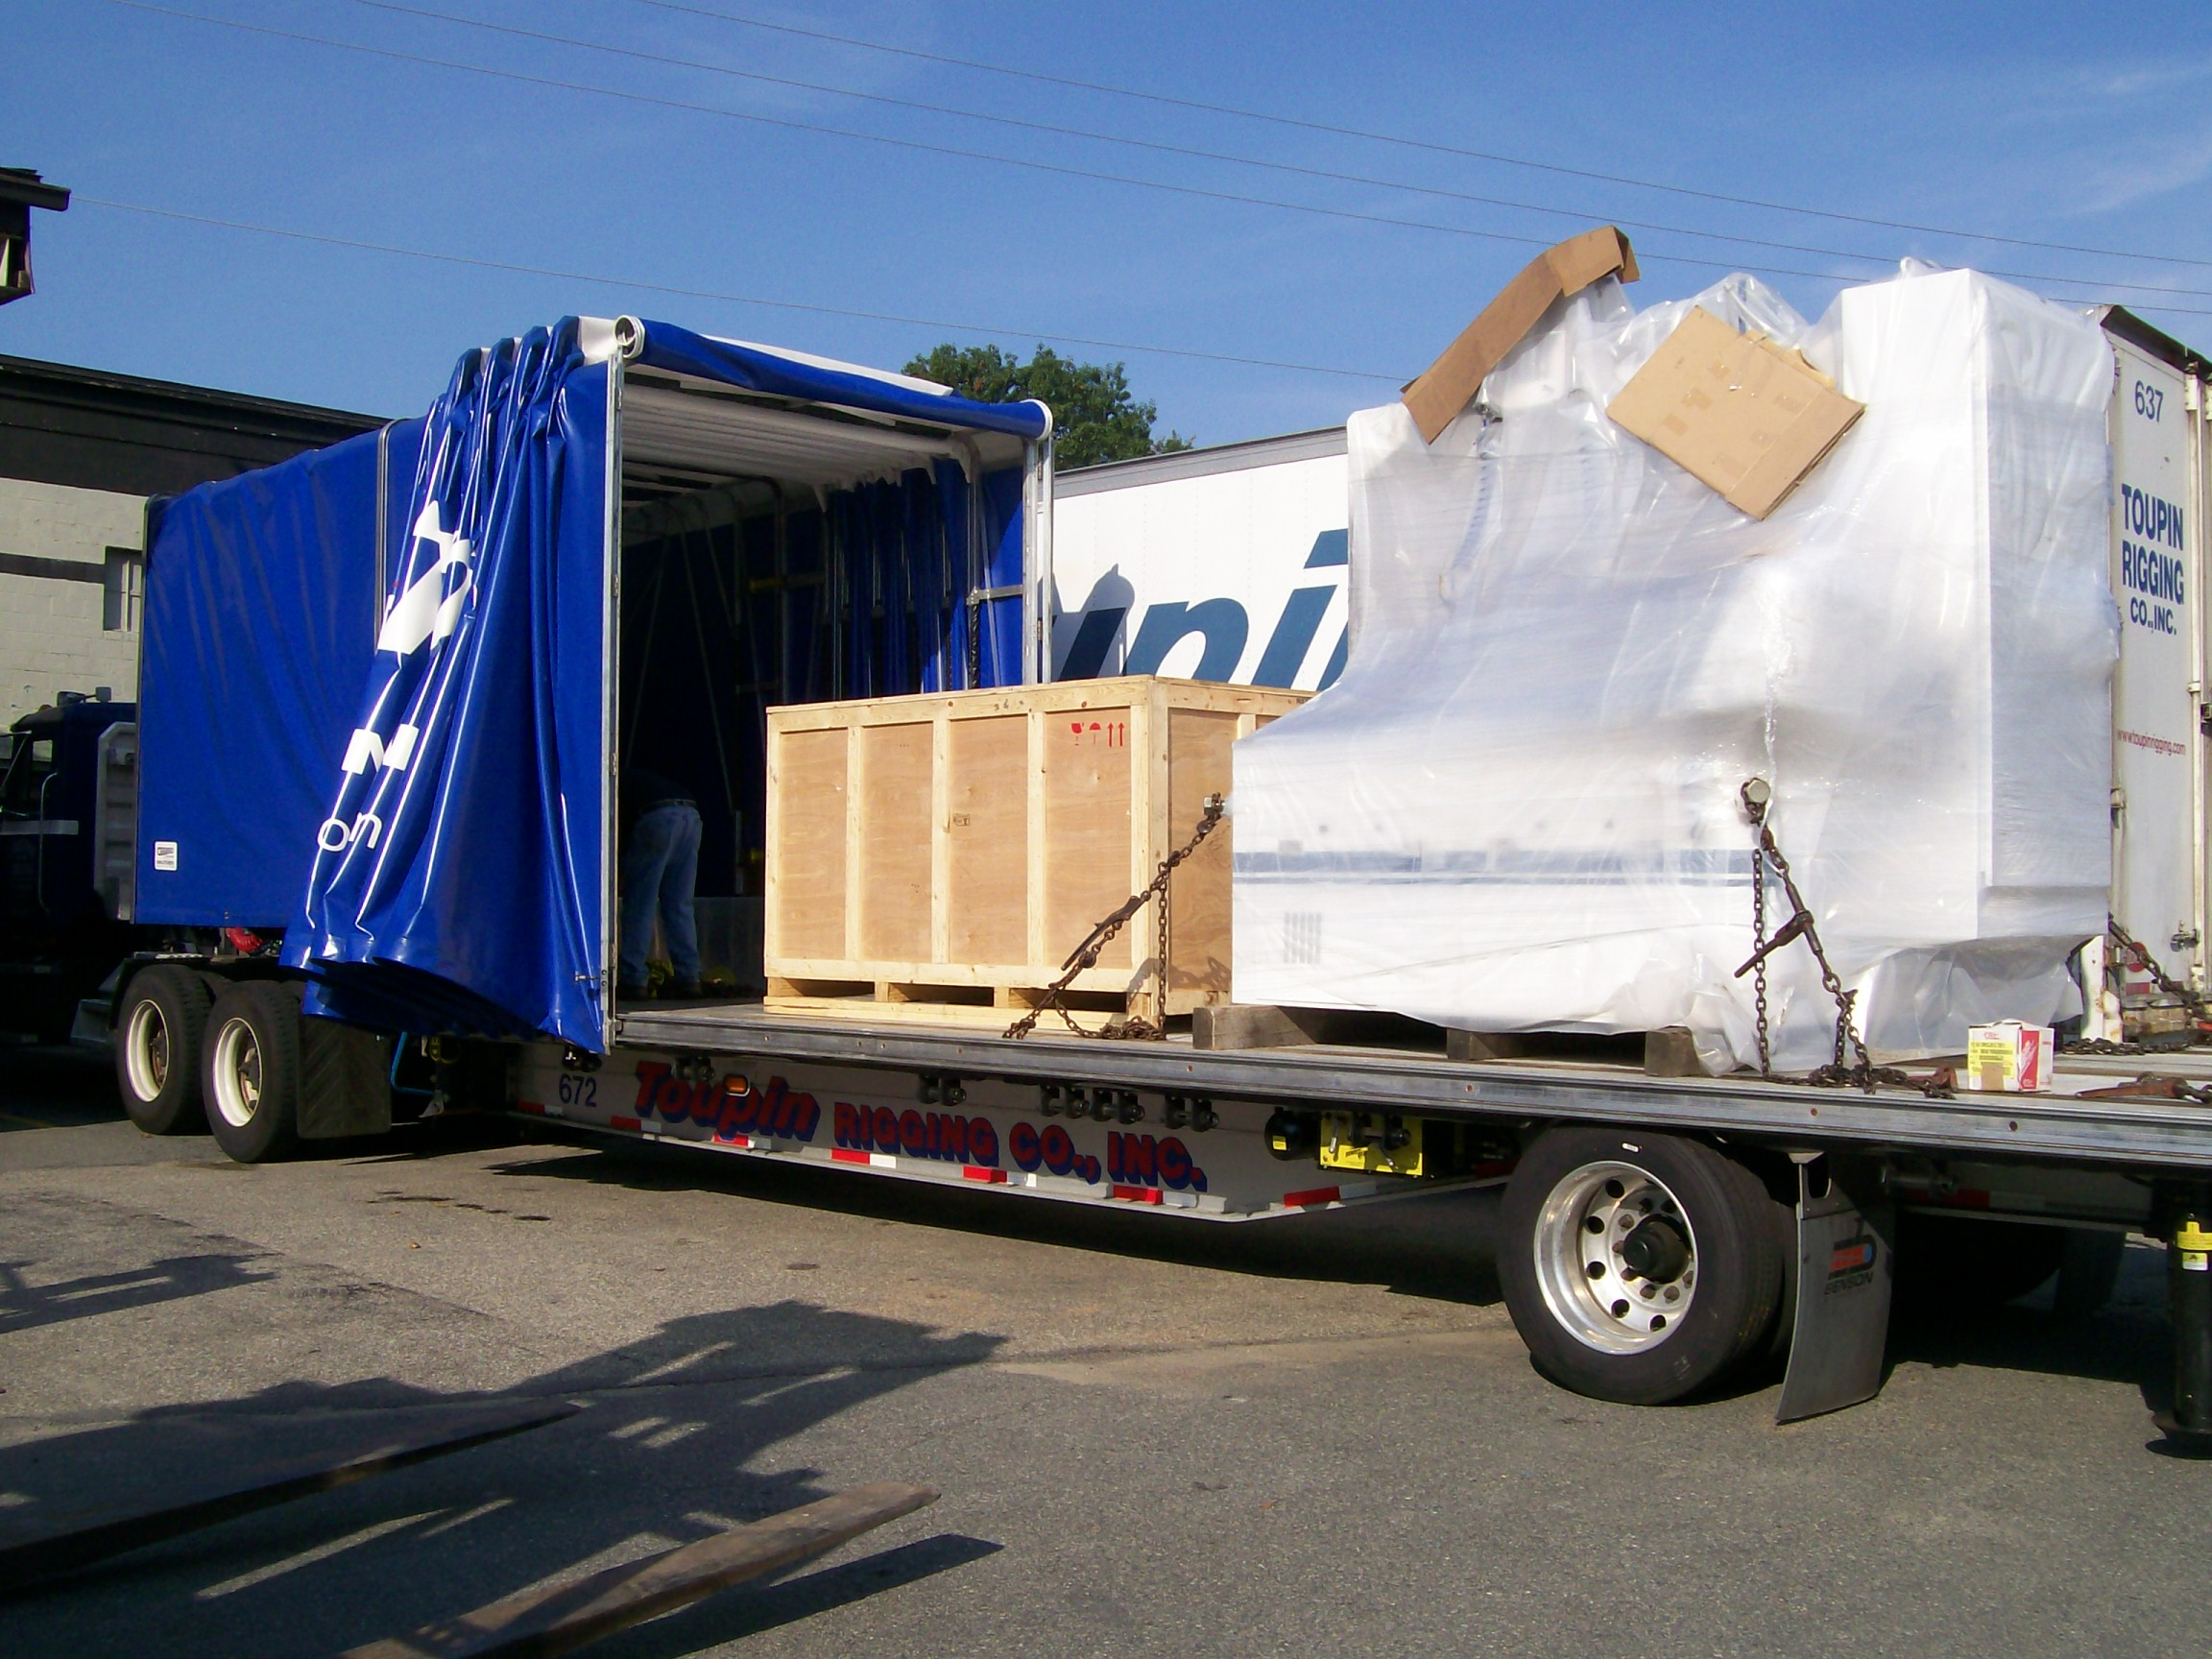 Toupin Industrial Warehouse Transportation